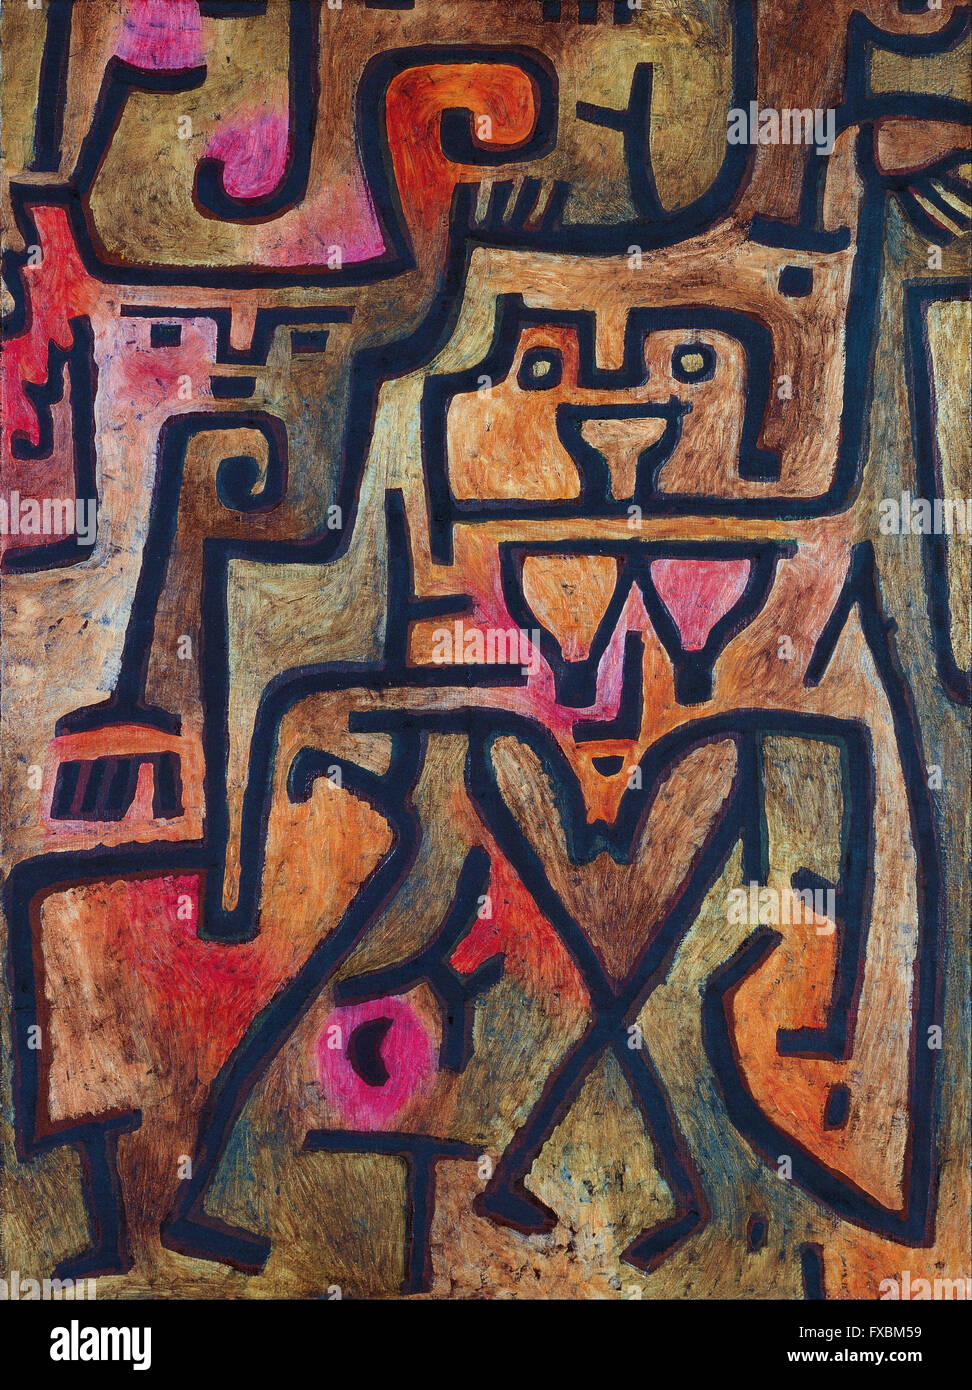 Paul Klee - Forest Witches - - Stock Image